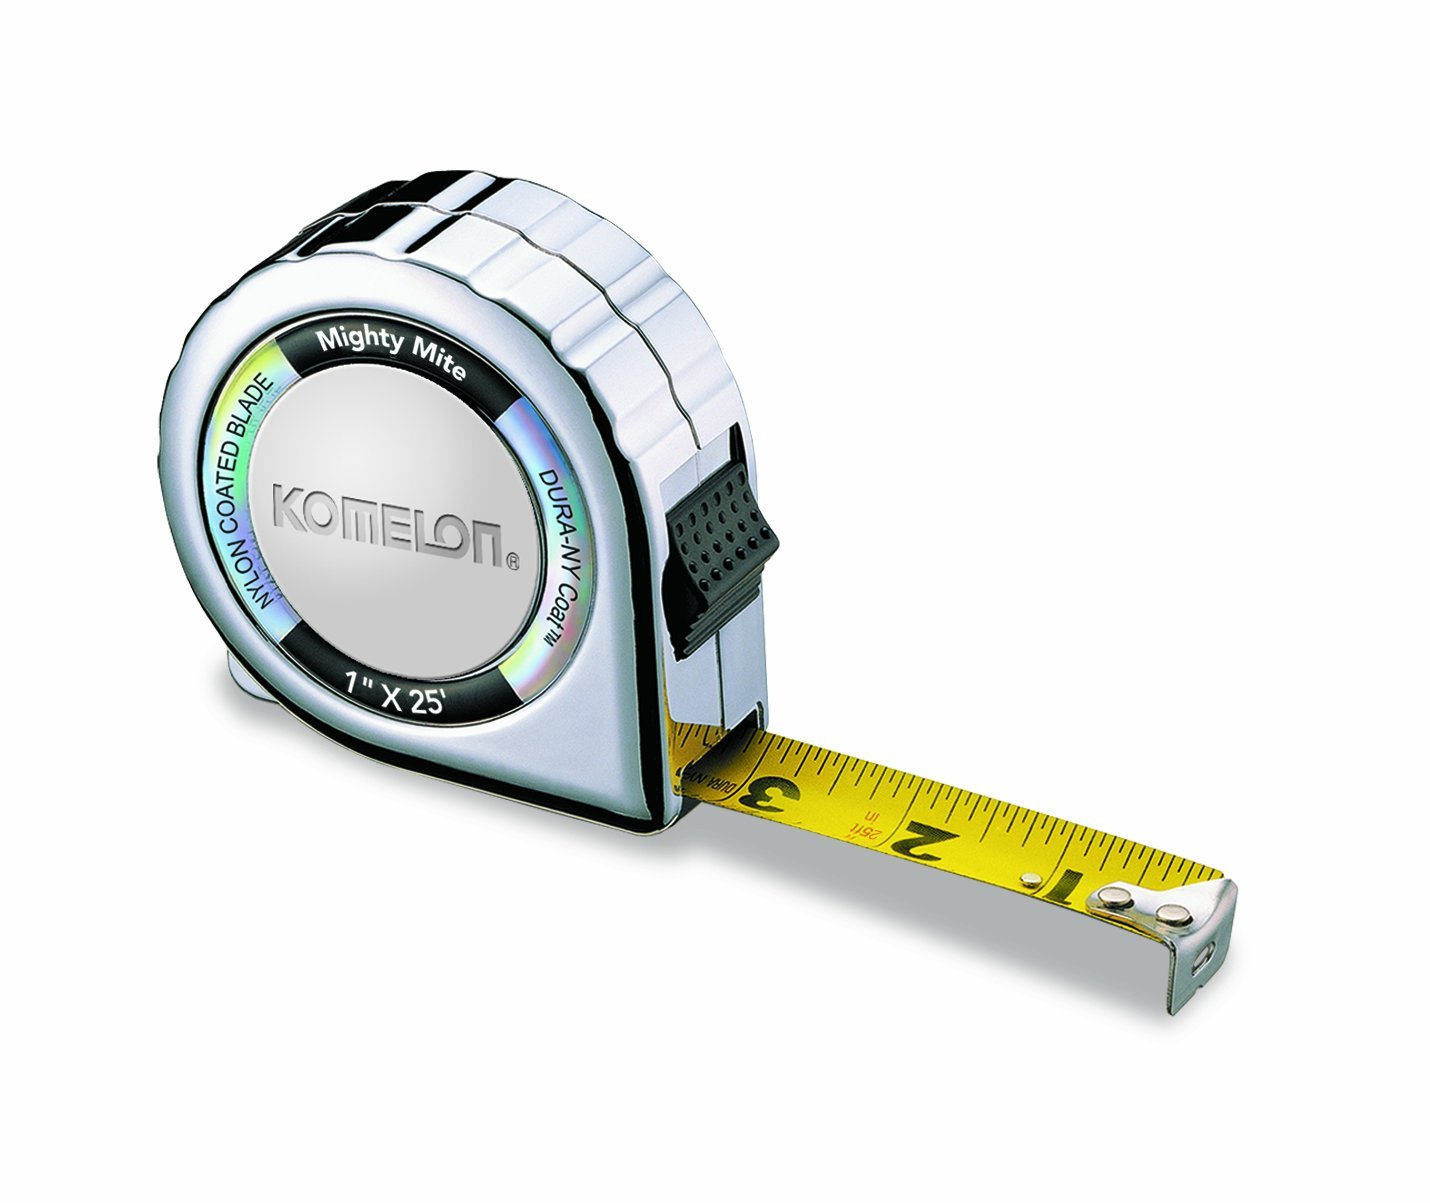 Komelon 525C Mighty Mite Tape Measure